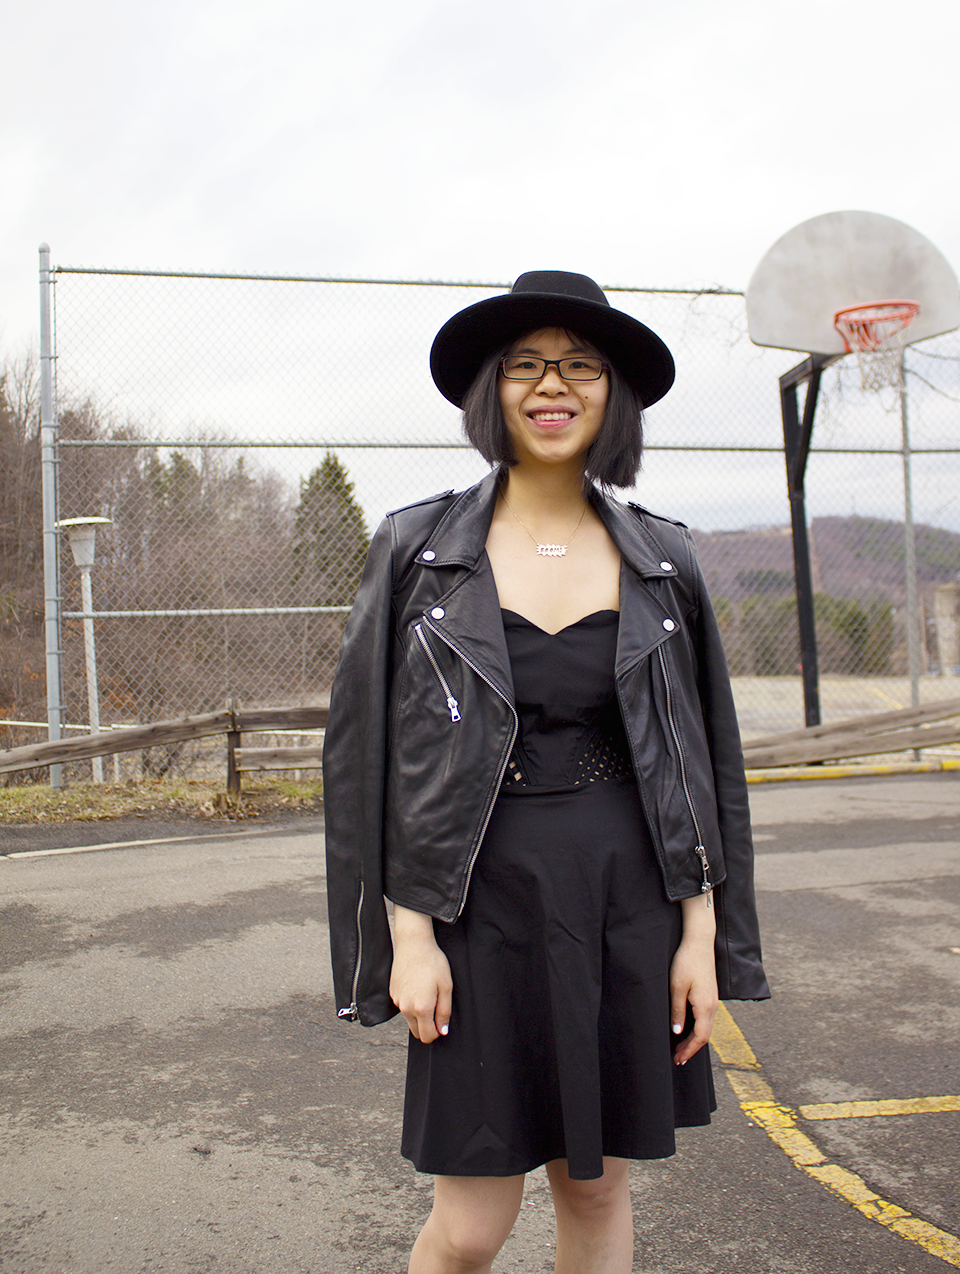 Classic and edgy all black outfit with black lattice dress, ZARA leather jacket, hat, and Opening Ceremony leather boots.